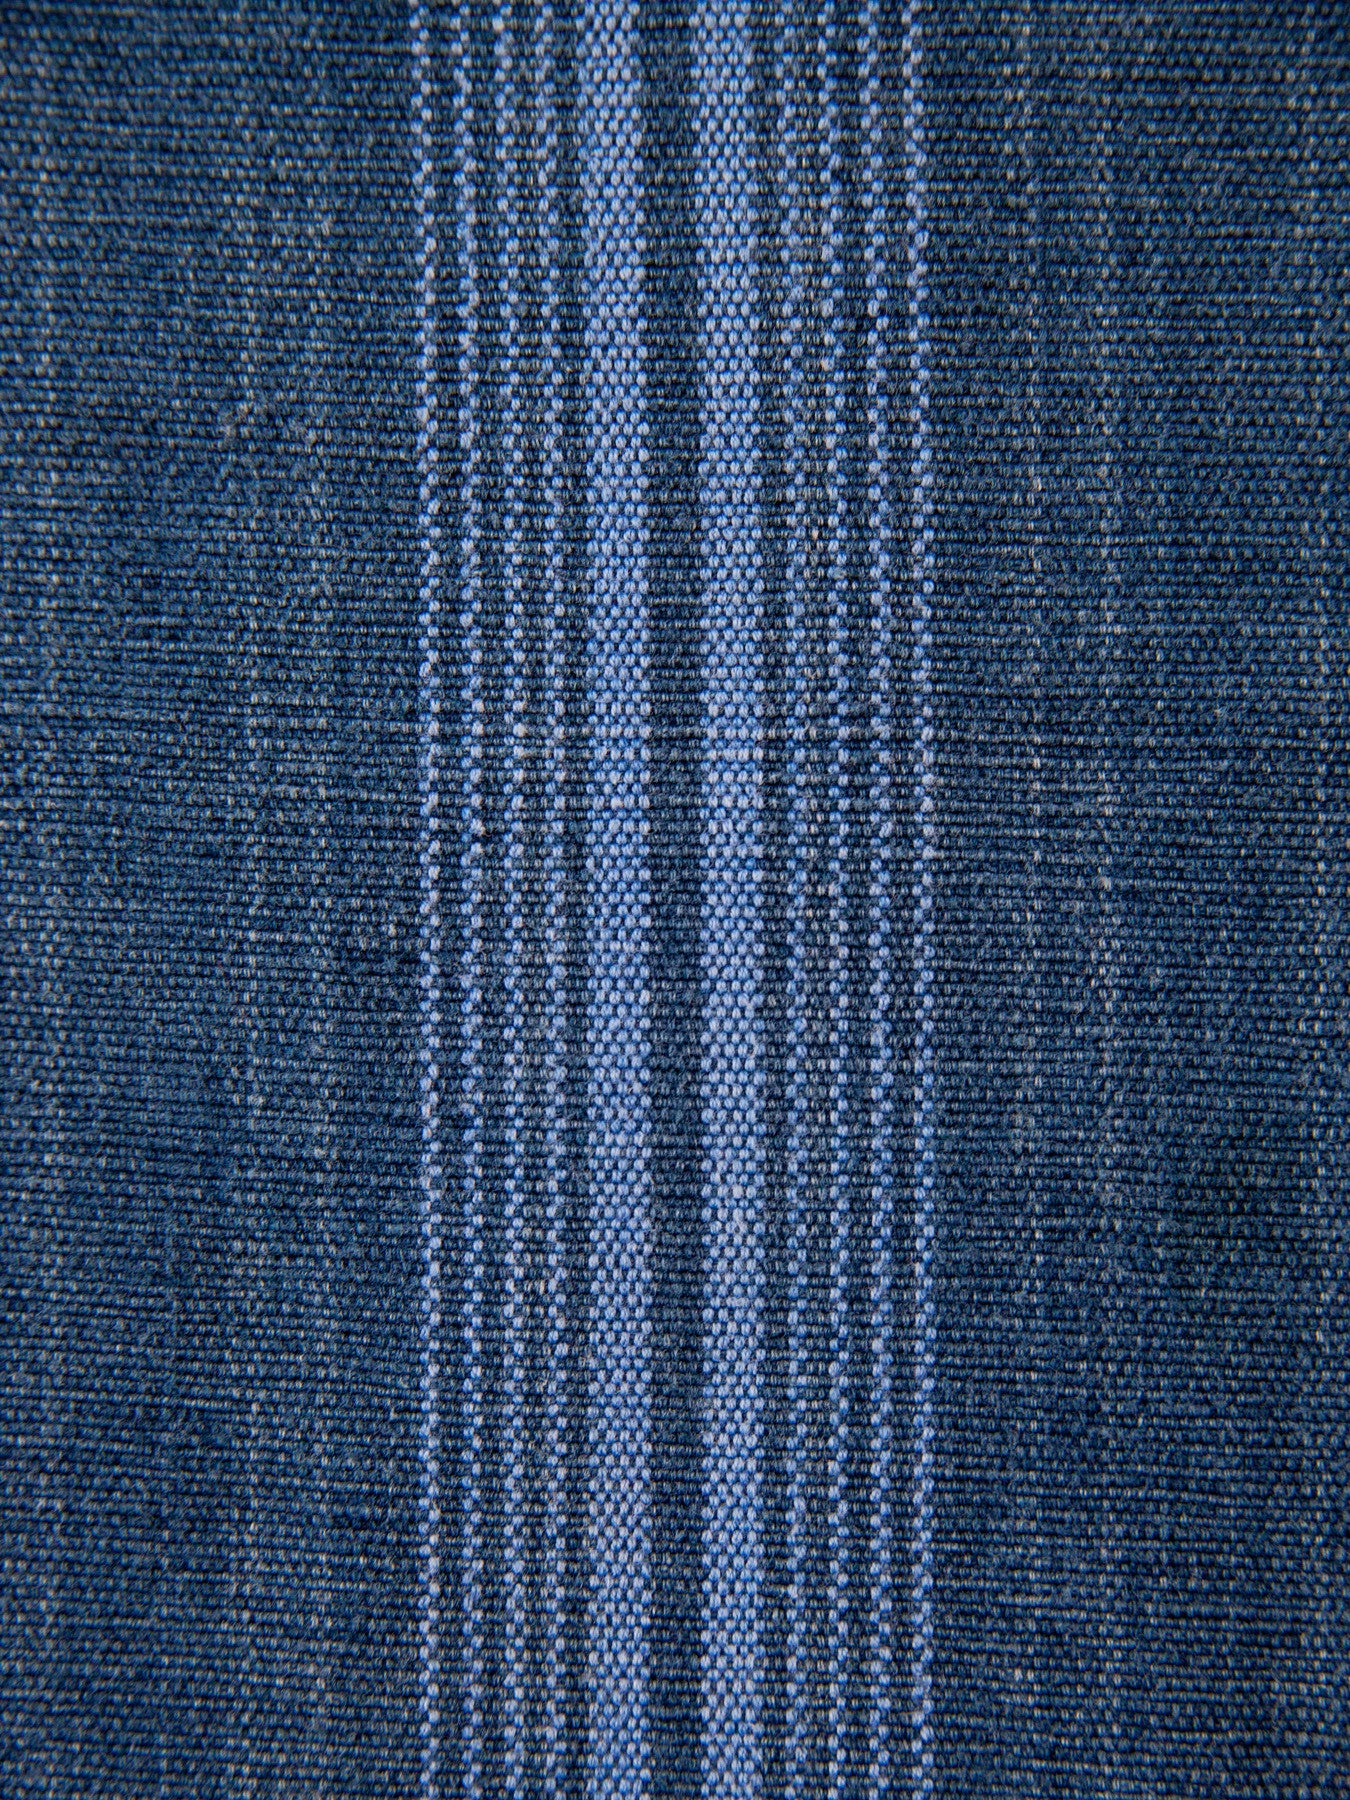 Vintage Indigo Tablecloth